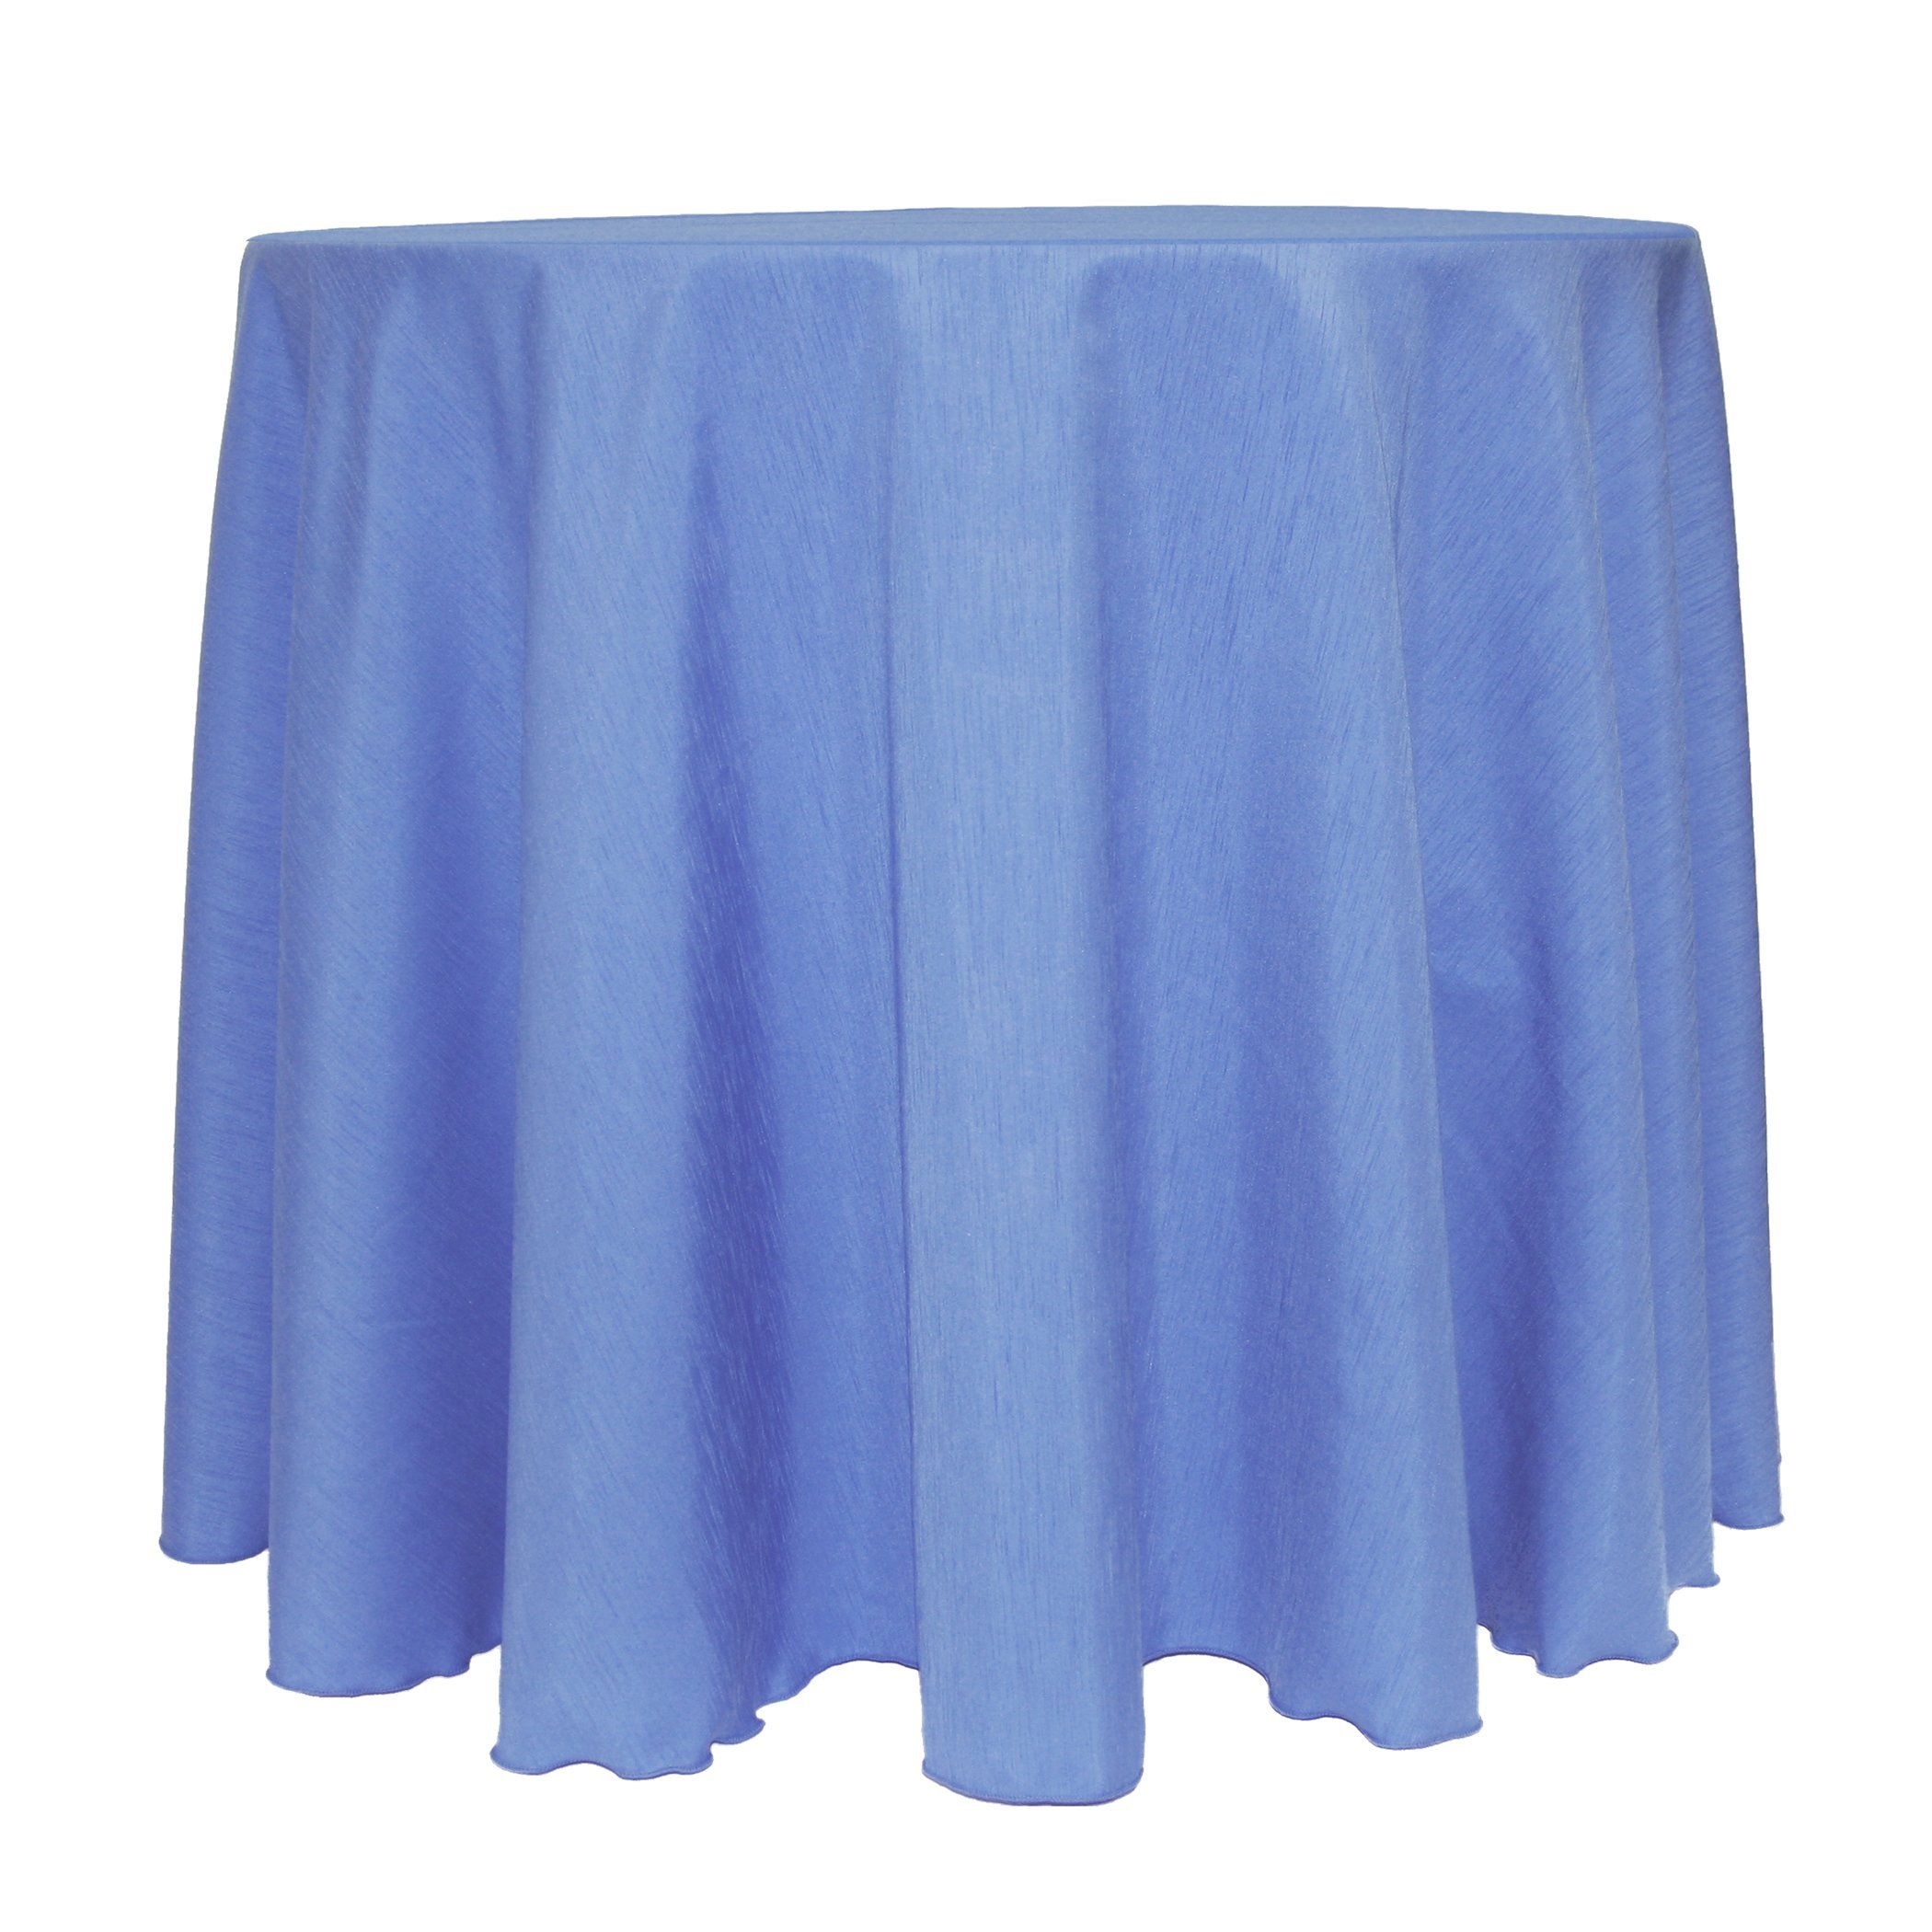 Ultimate Textile (5 Pack) Reversible Shantung Satin - Majestic 90-Inch Round Tablecloth - for Weddings, Home Parties and Special Event use, Periwinkle Blue